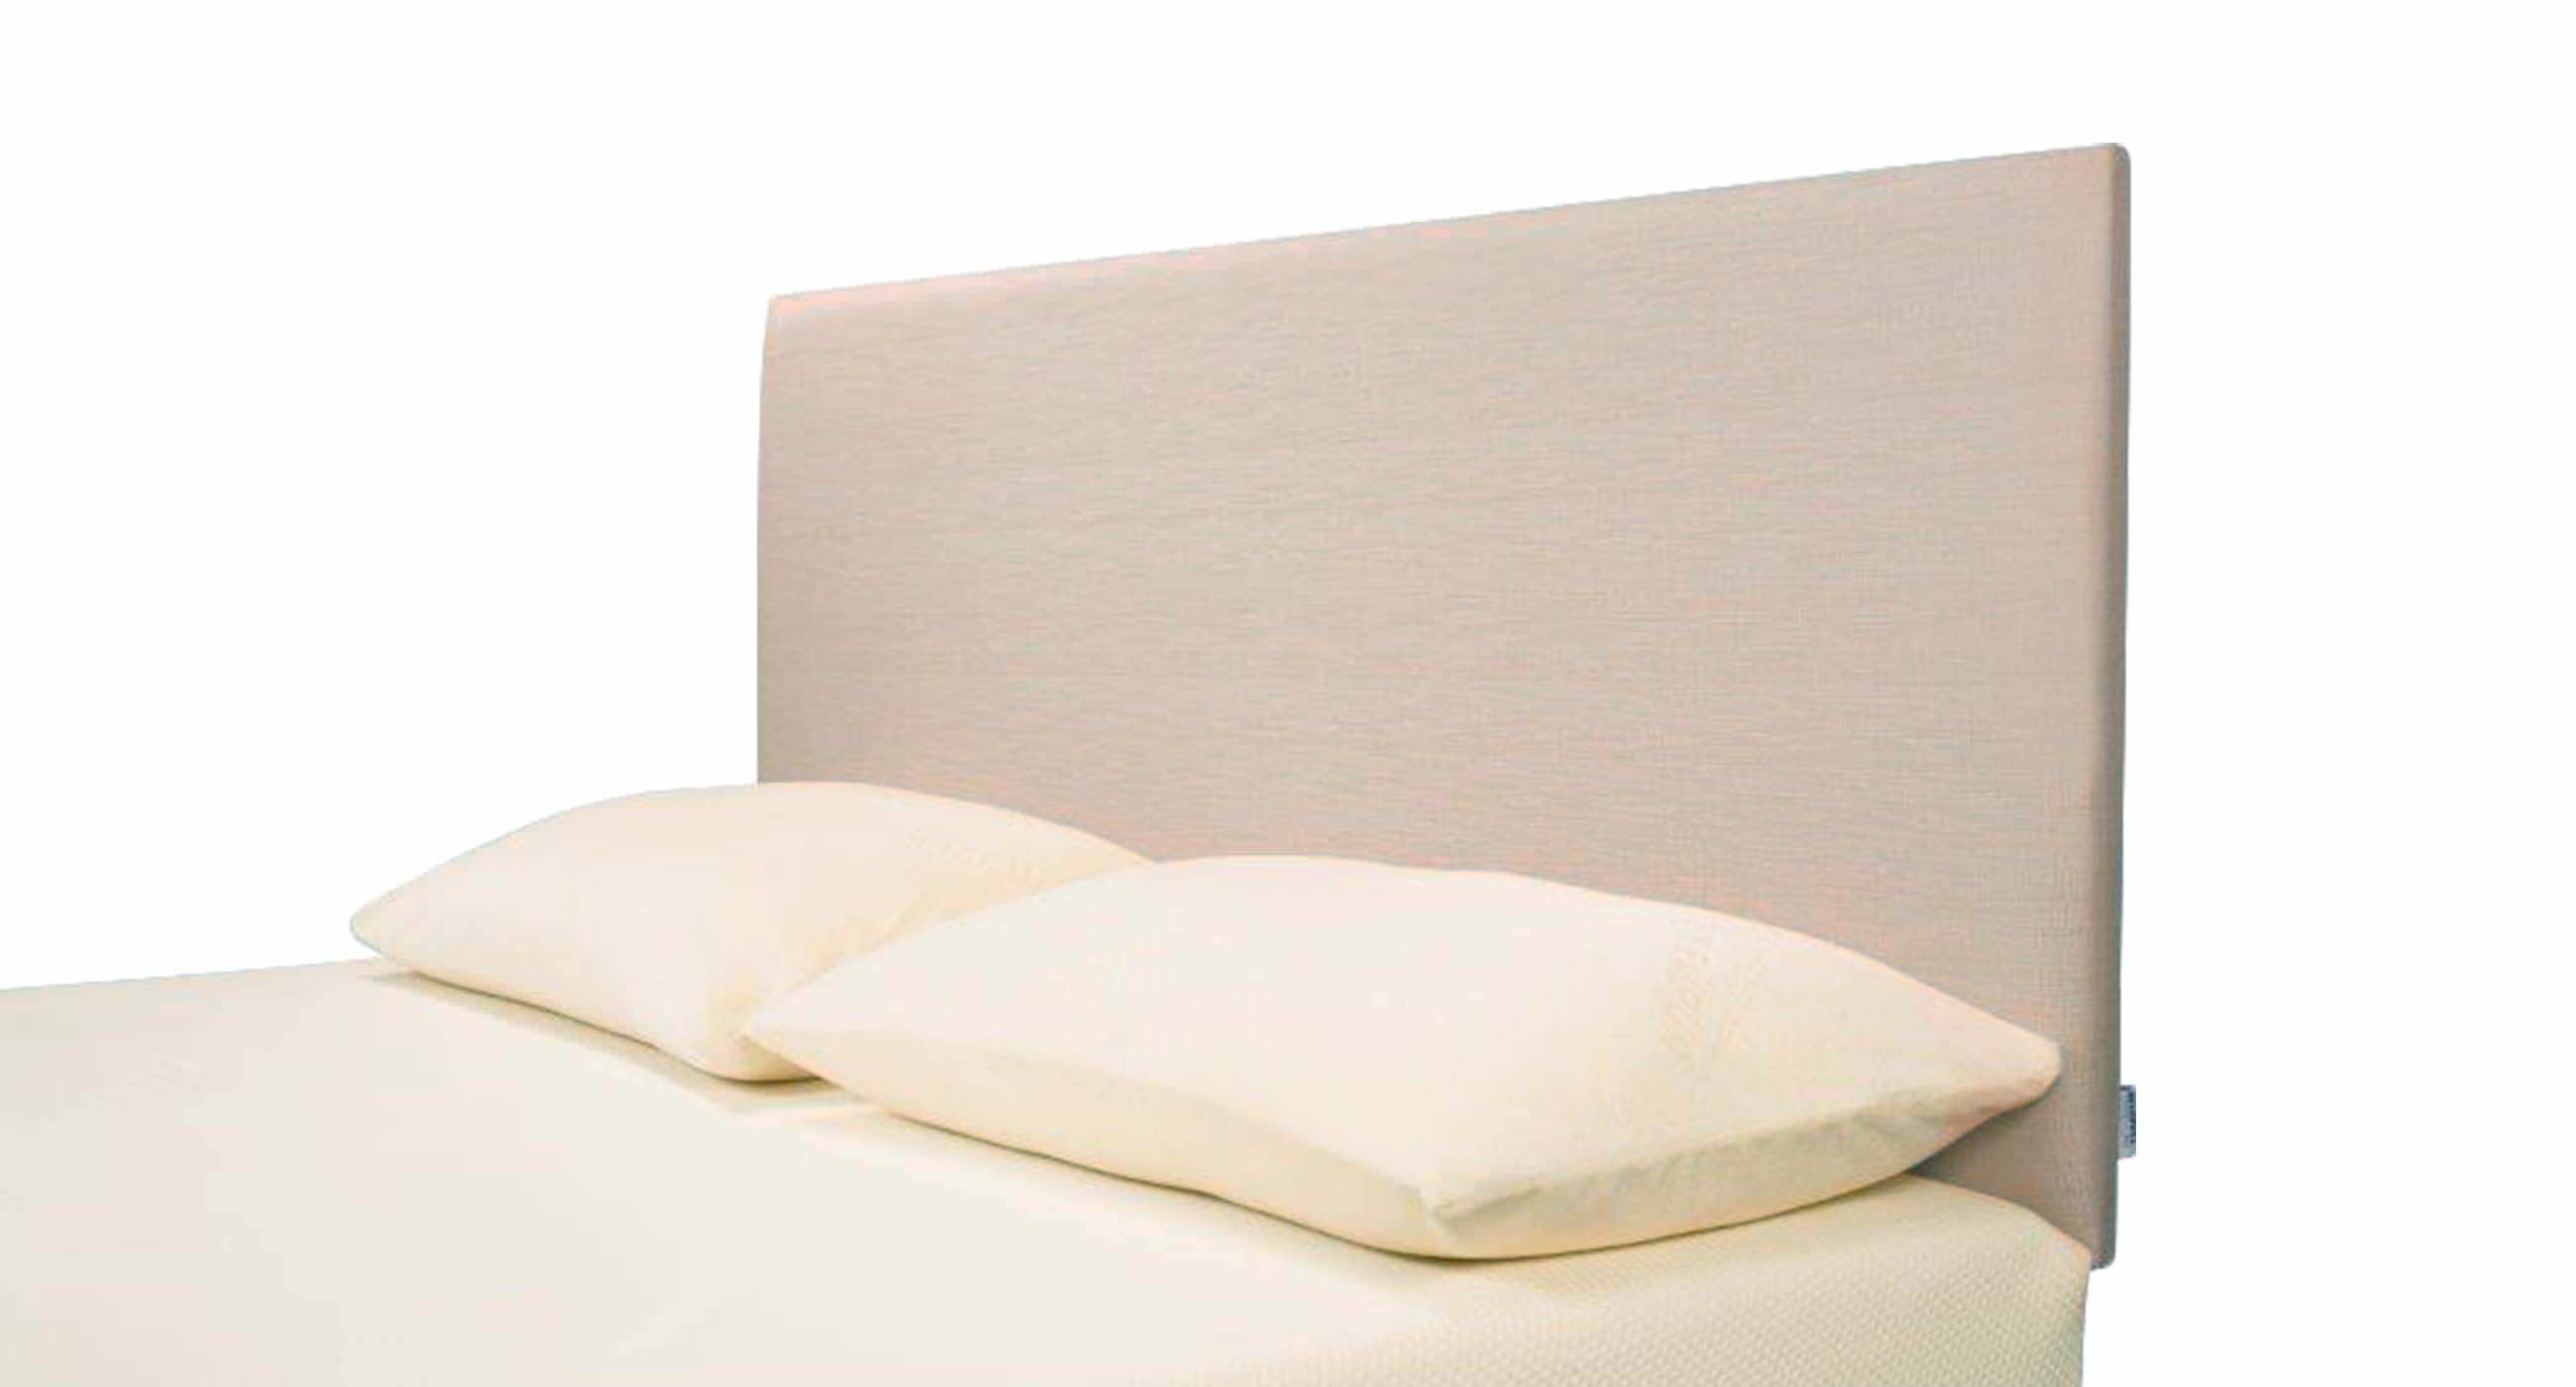 Double Bed Headboard / Contemporary / Fabric / Upholstered   ARDENNES PLAIN